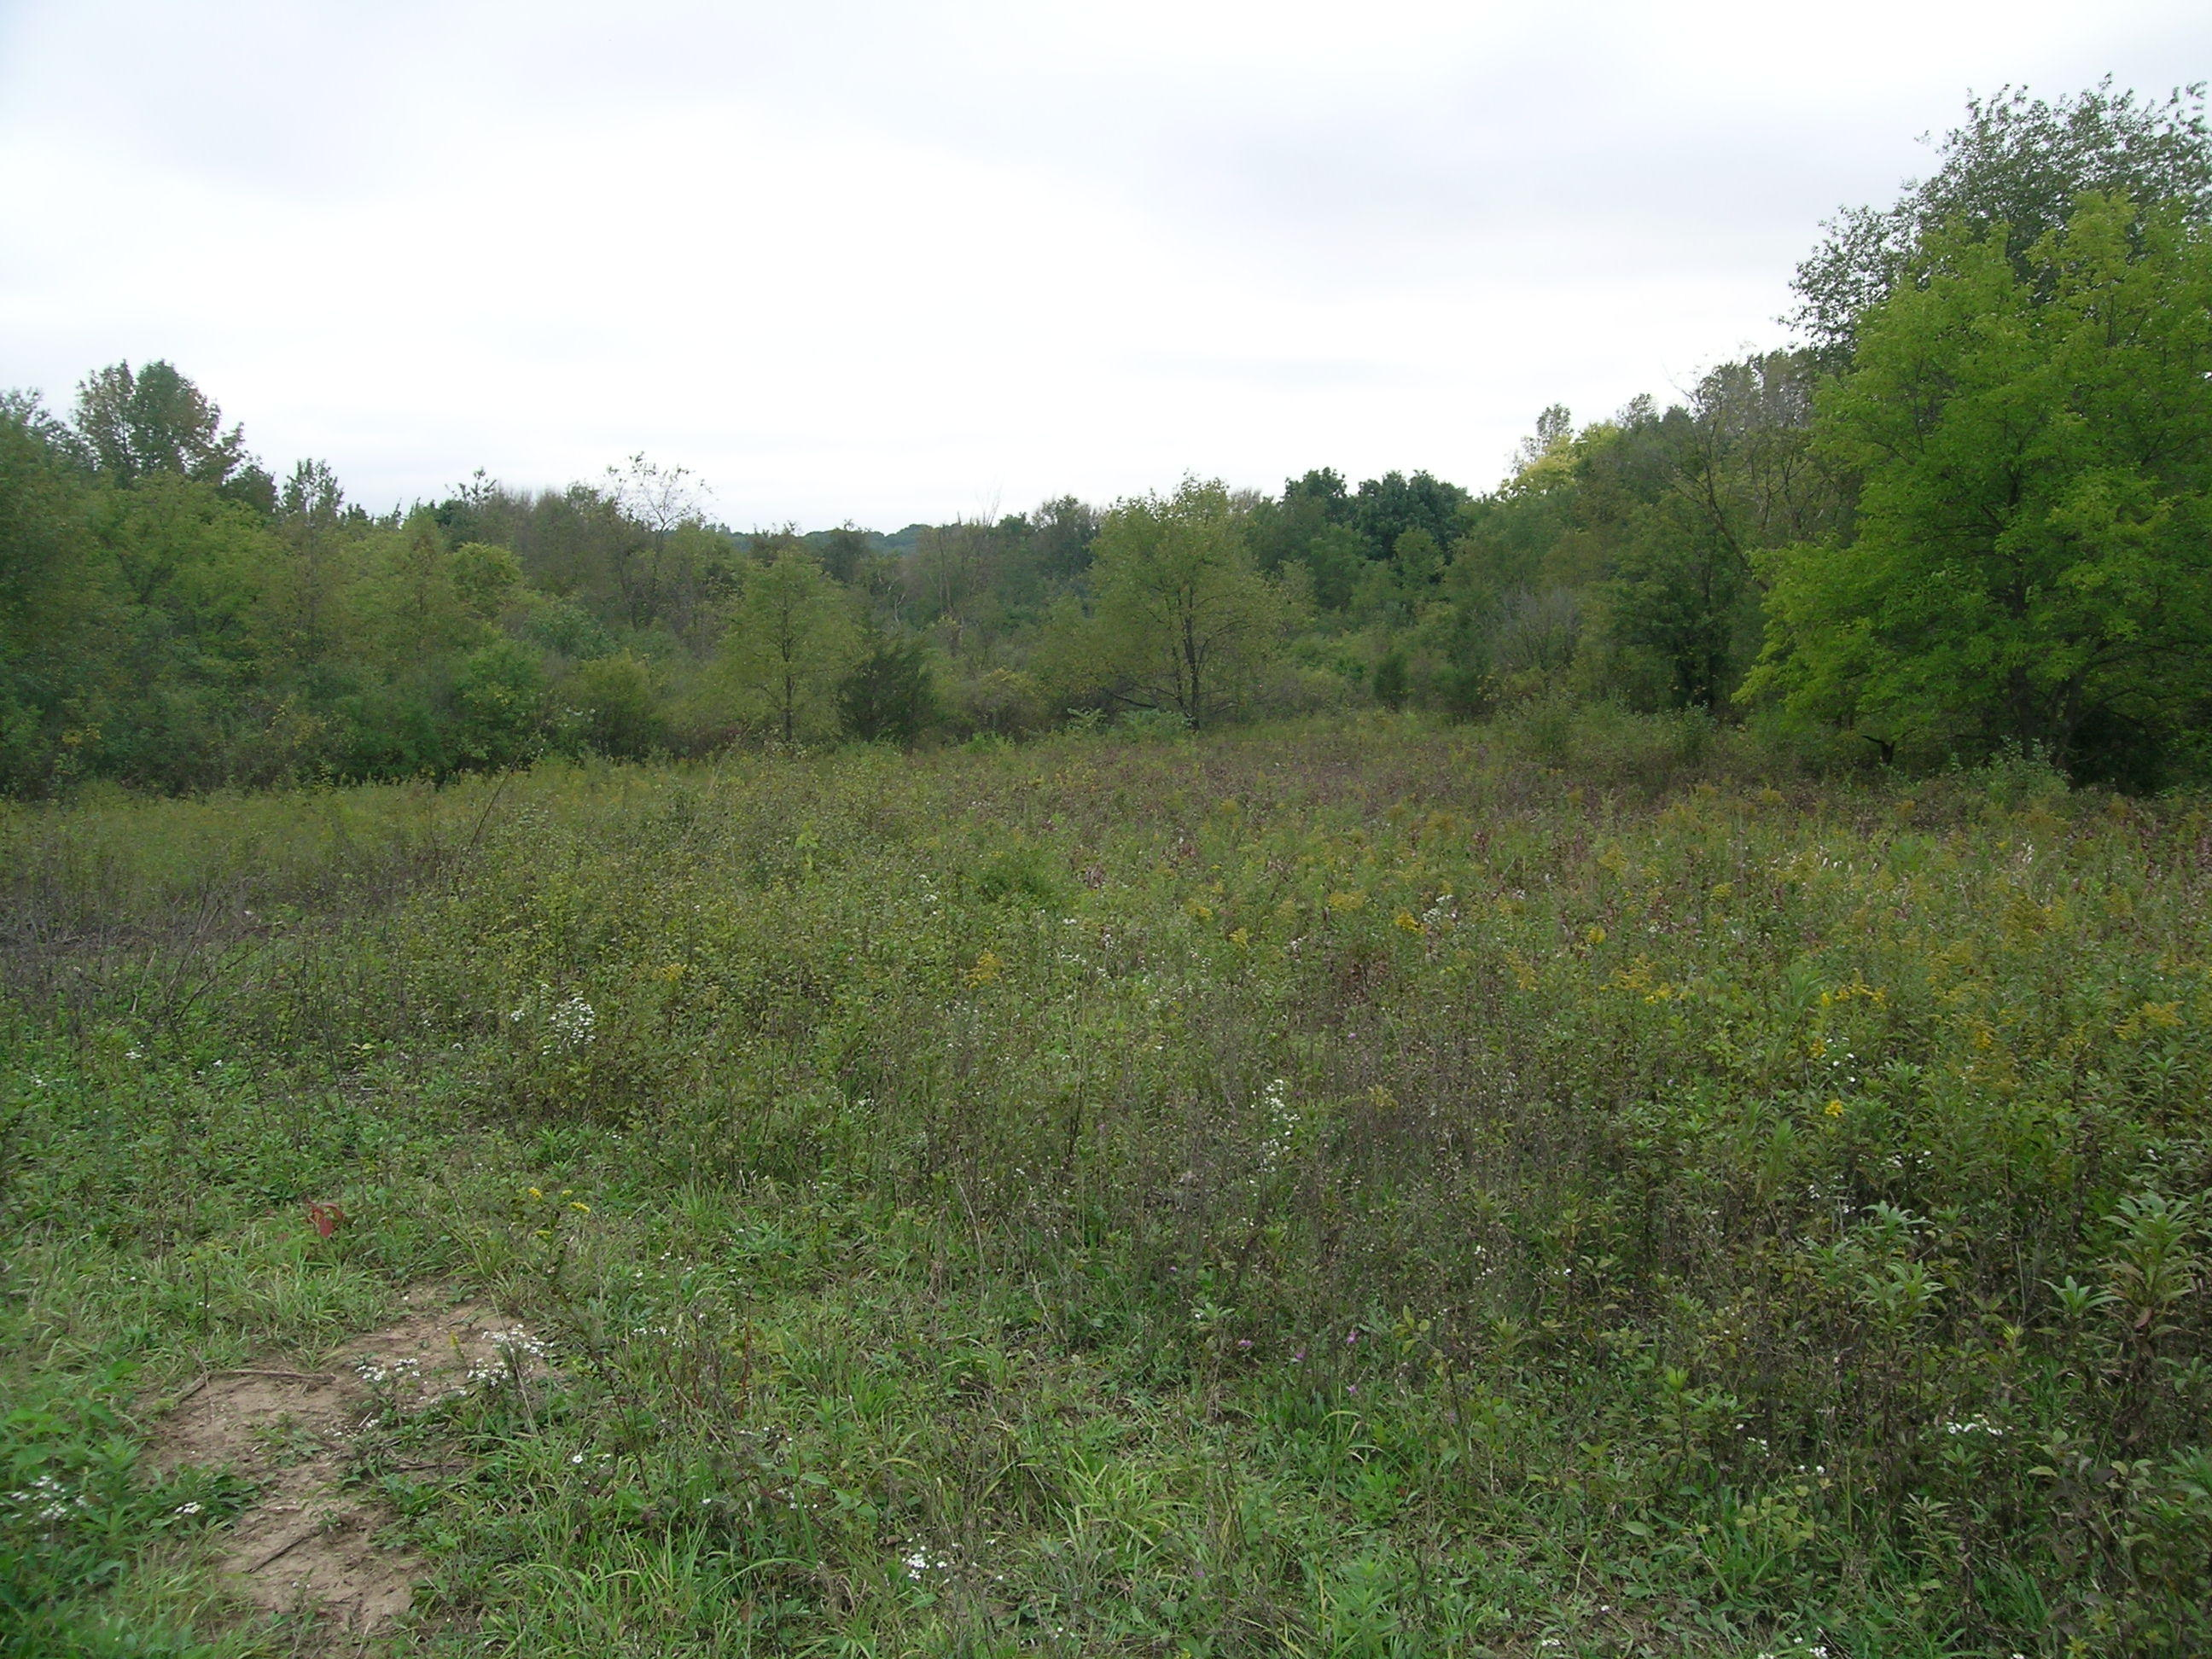 N47W27375 Lynndale Rd, Pewaukee, Wisconsin 53072, ,Vacant Land,For Sale,Lynndale Rd,1607465